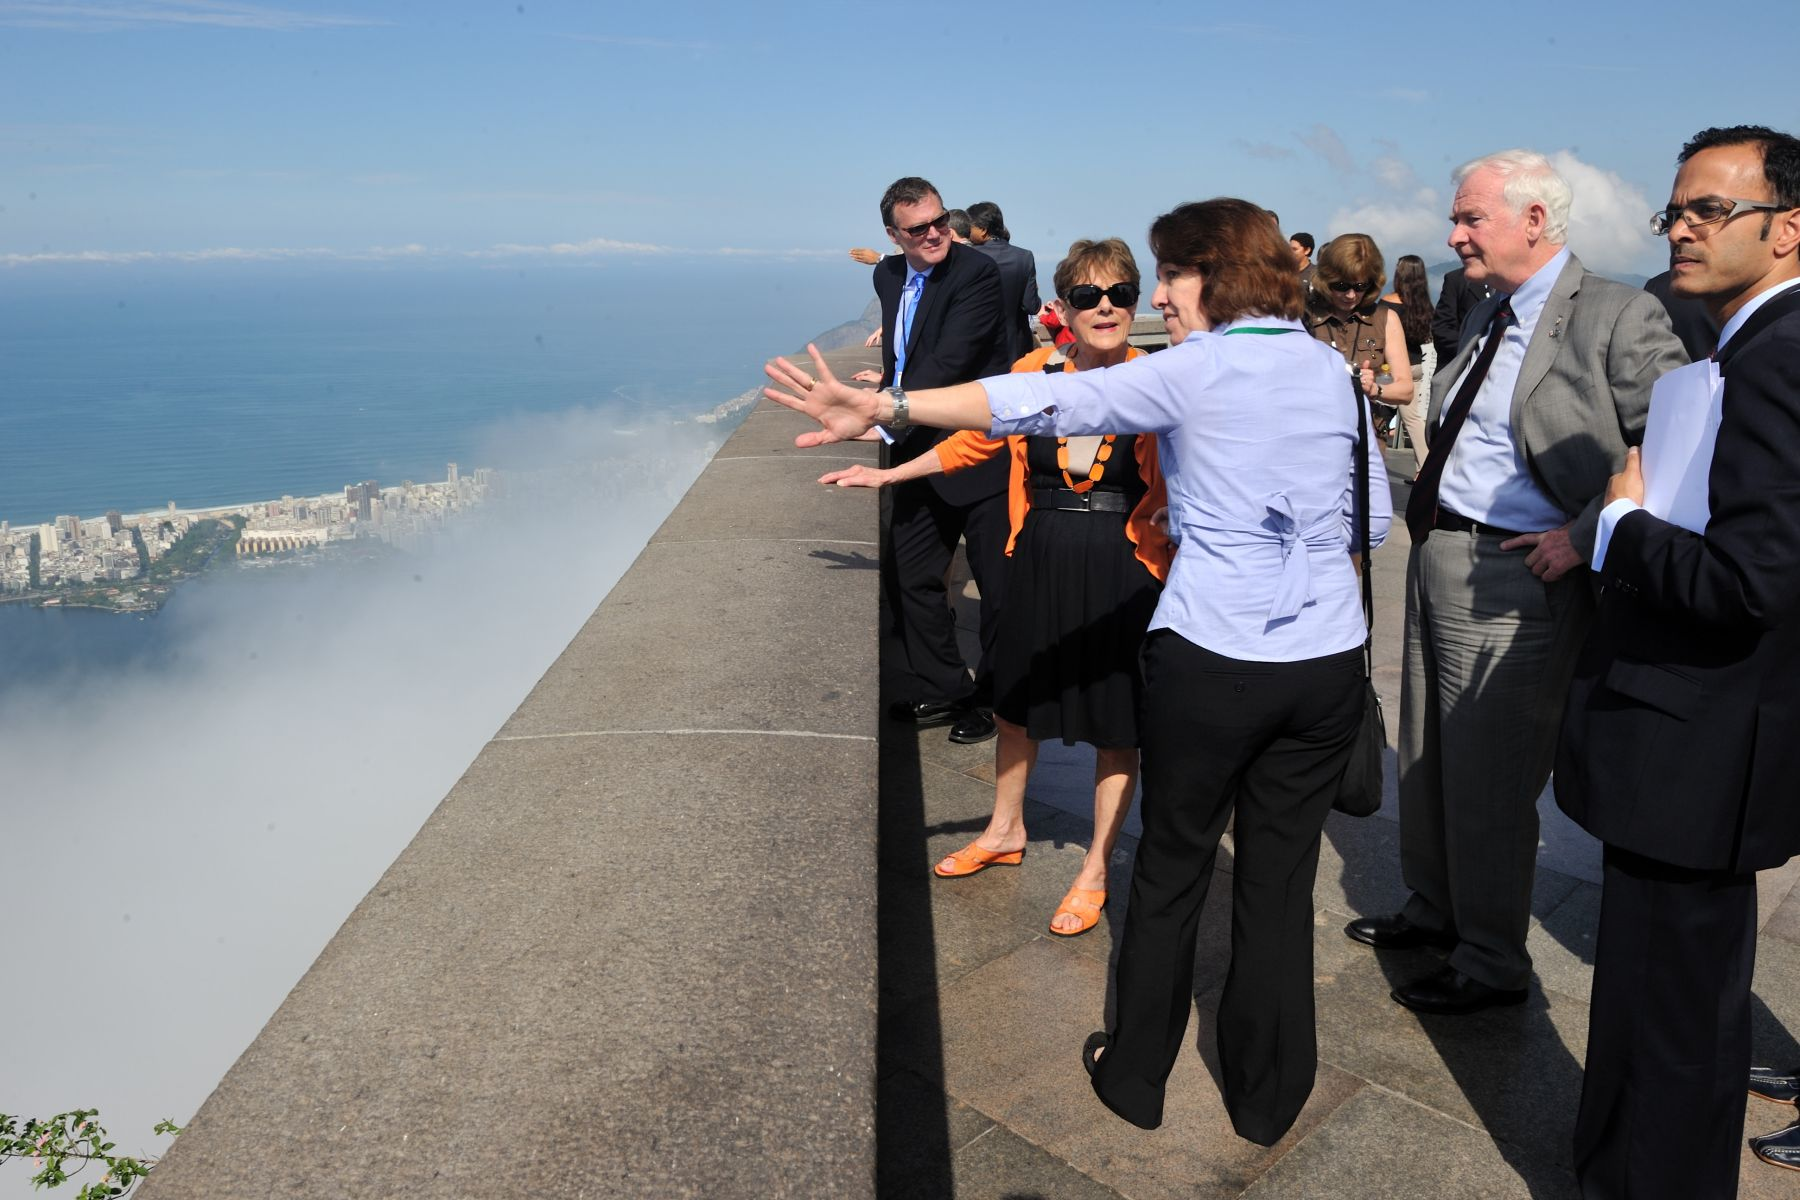 Their Excellencies and the Canadian delegation visited Corcovado, the famous mountain in central Rio de Janeiro.